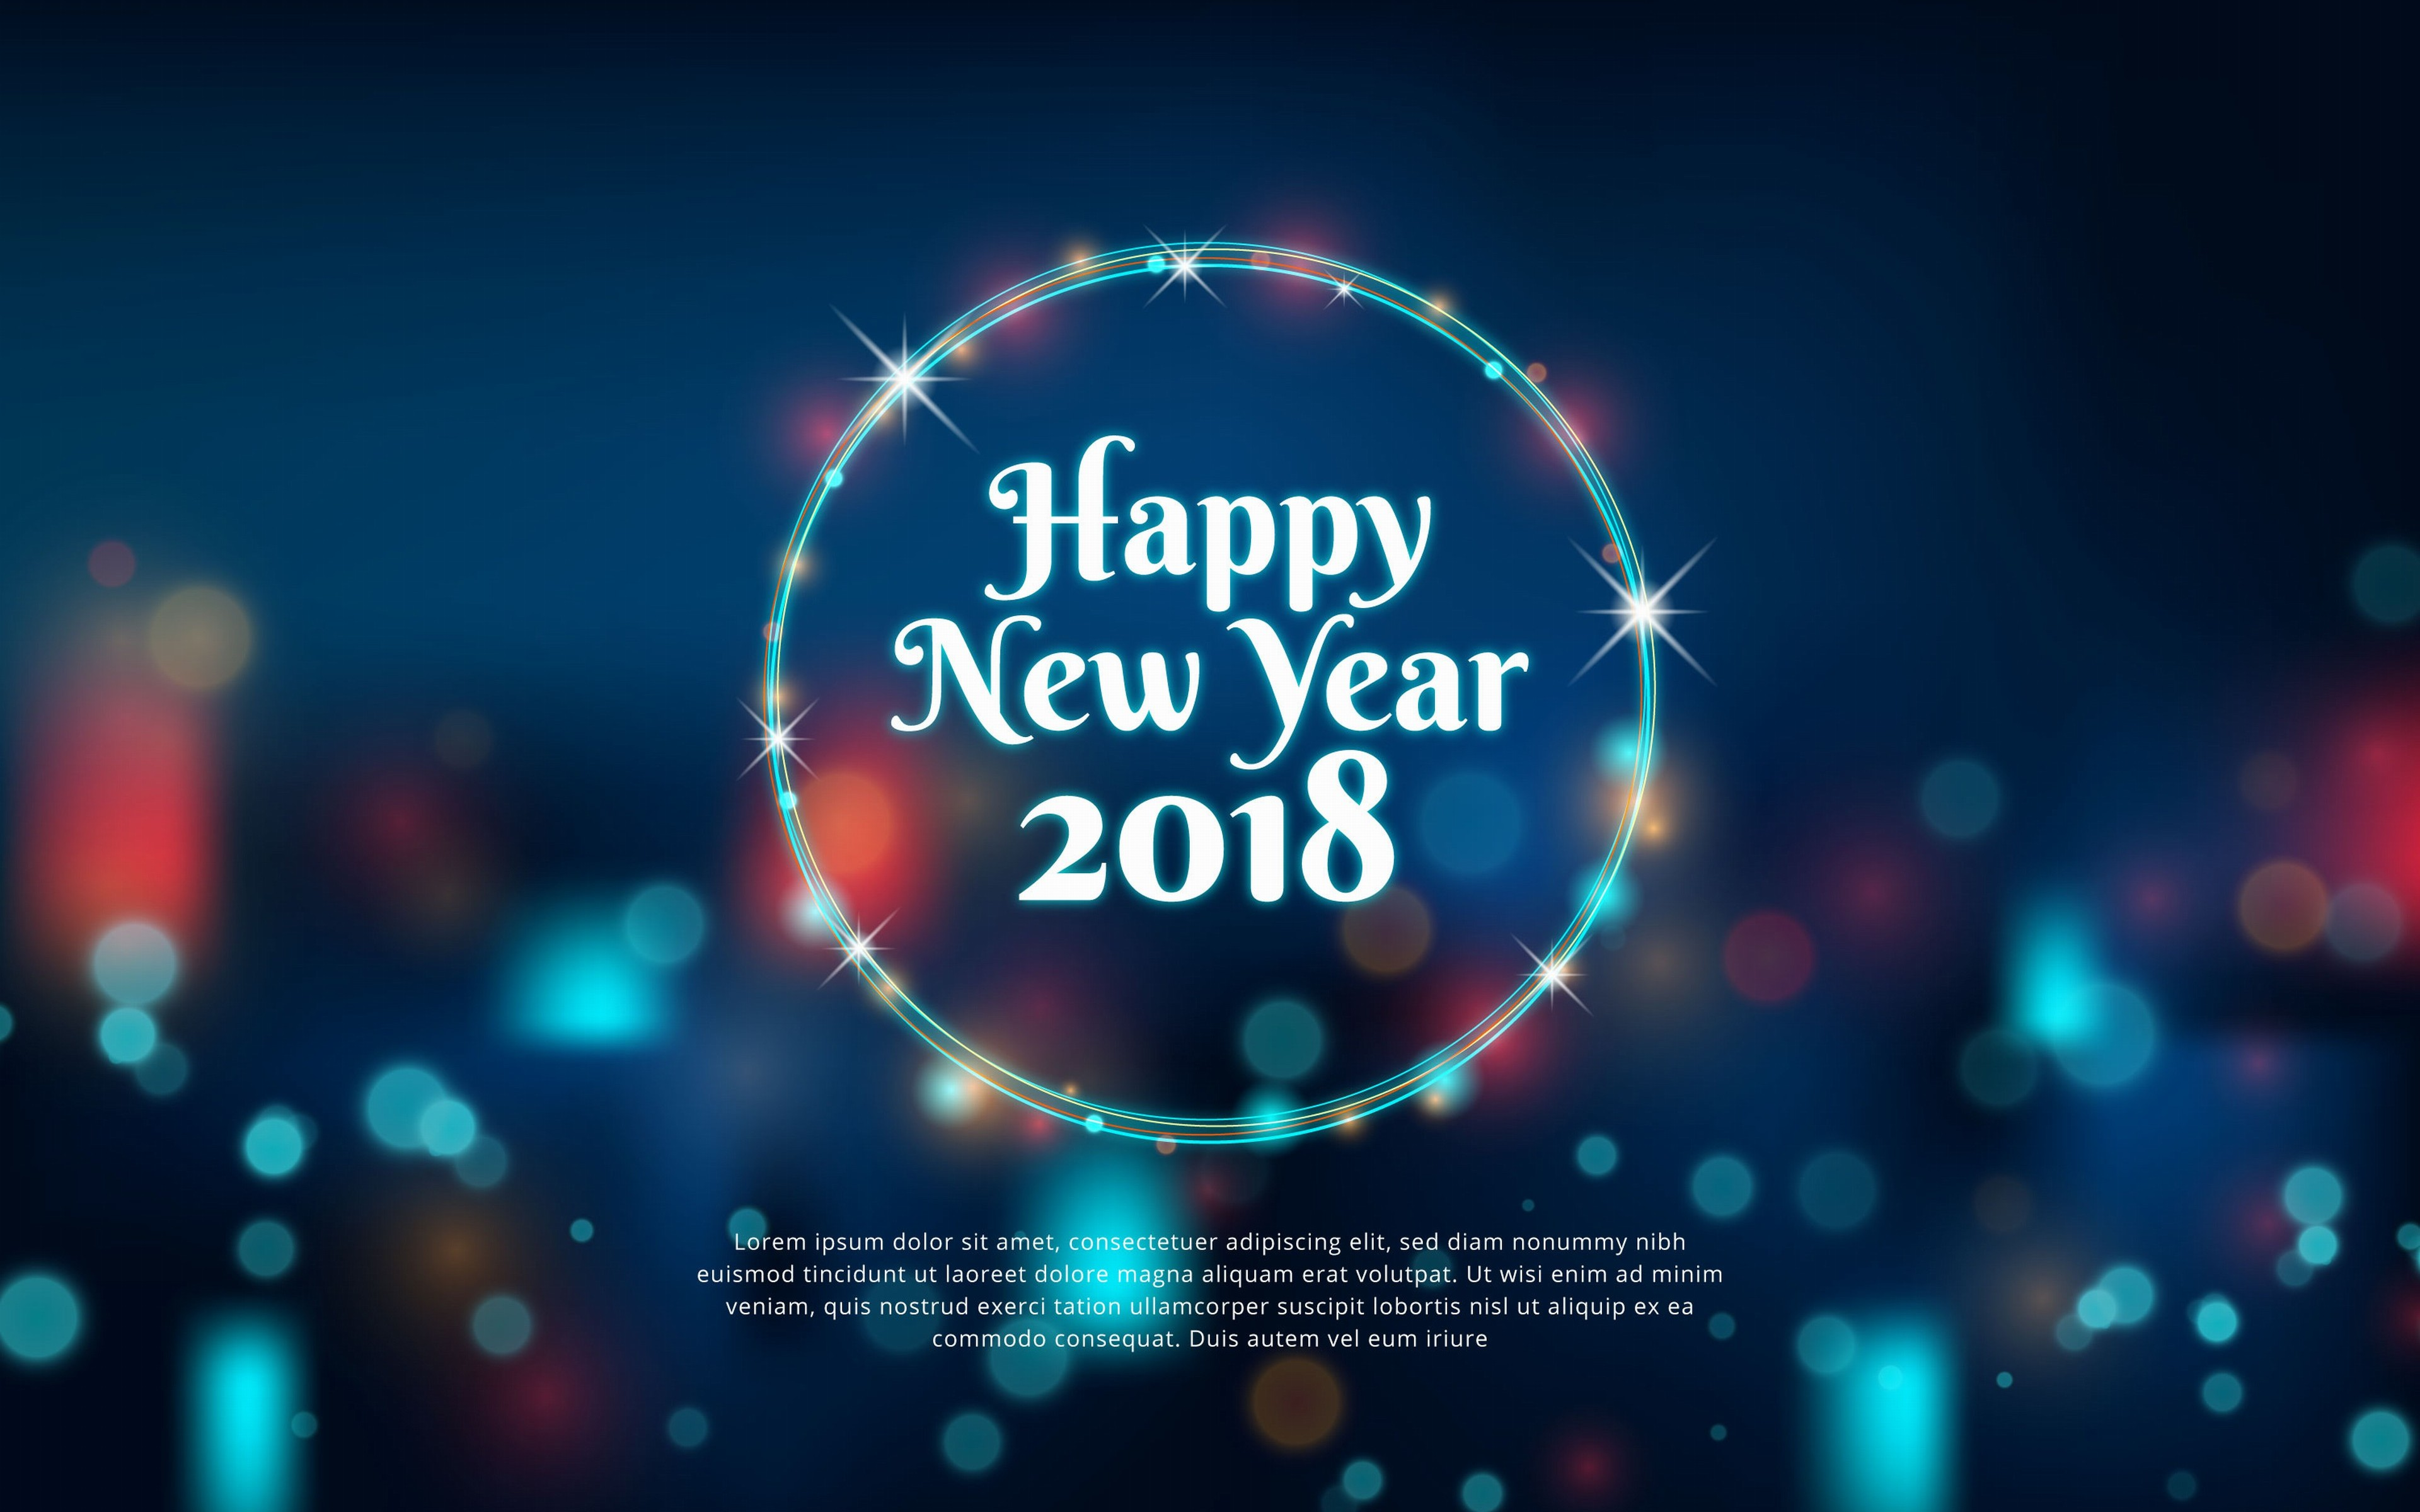 year 2018 full hd wallpaper download for happy new year 3840x2400